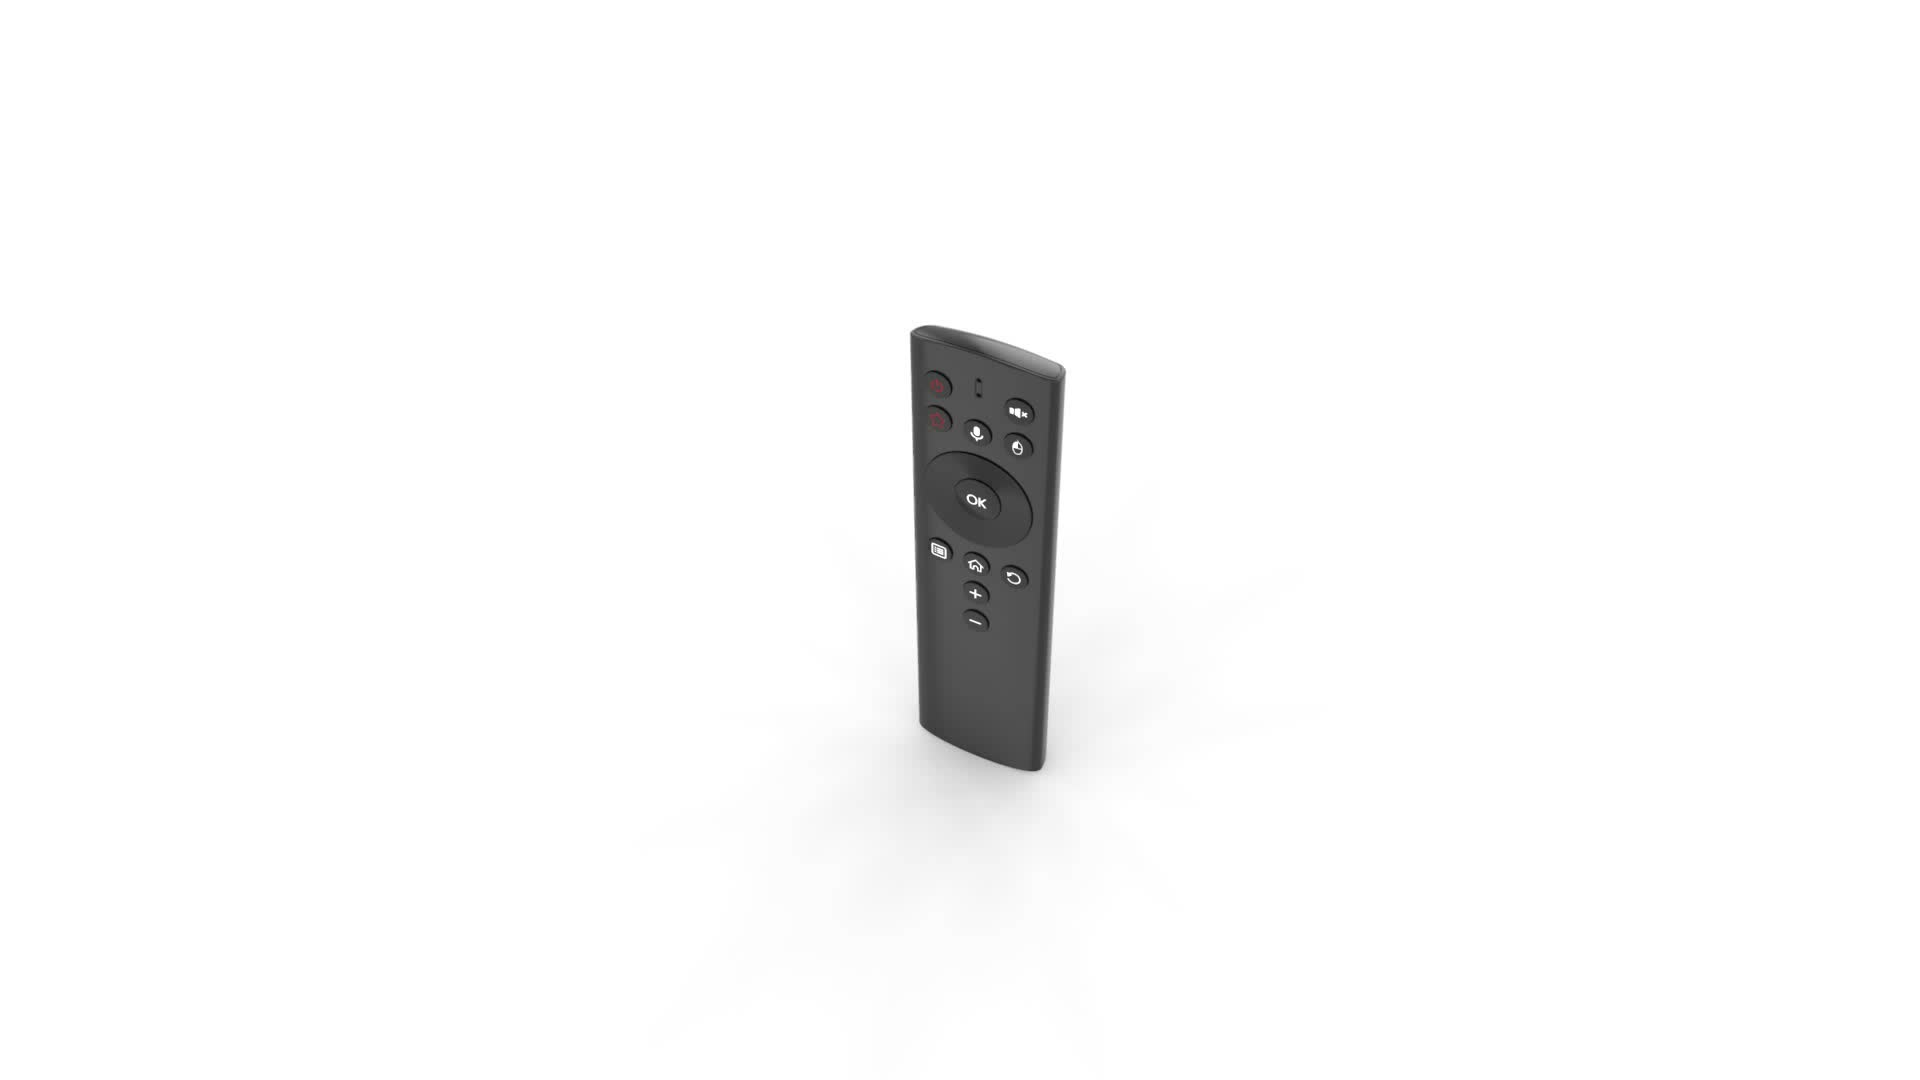 RC02F Six-Axis Gyroscope Remote with Voice Input google assitant voice for MI BOX nivida ect